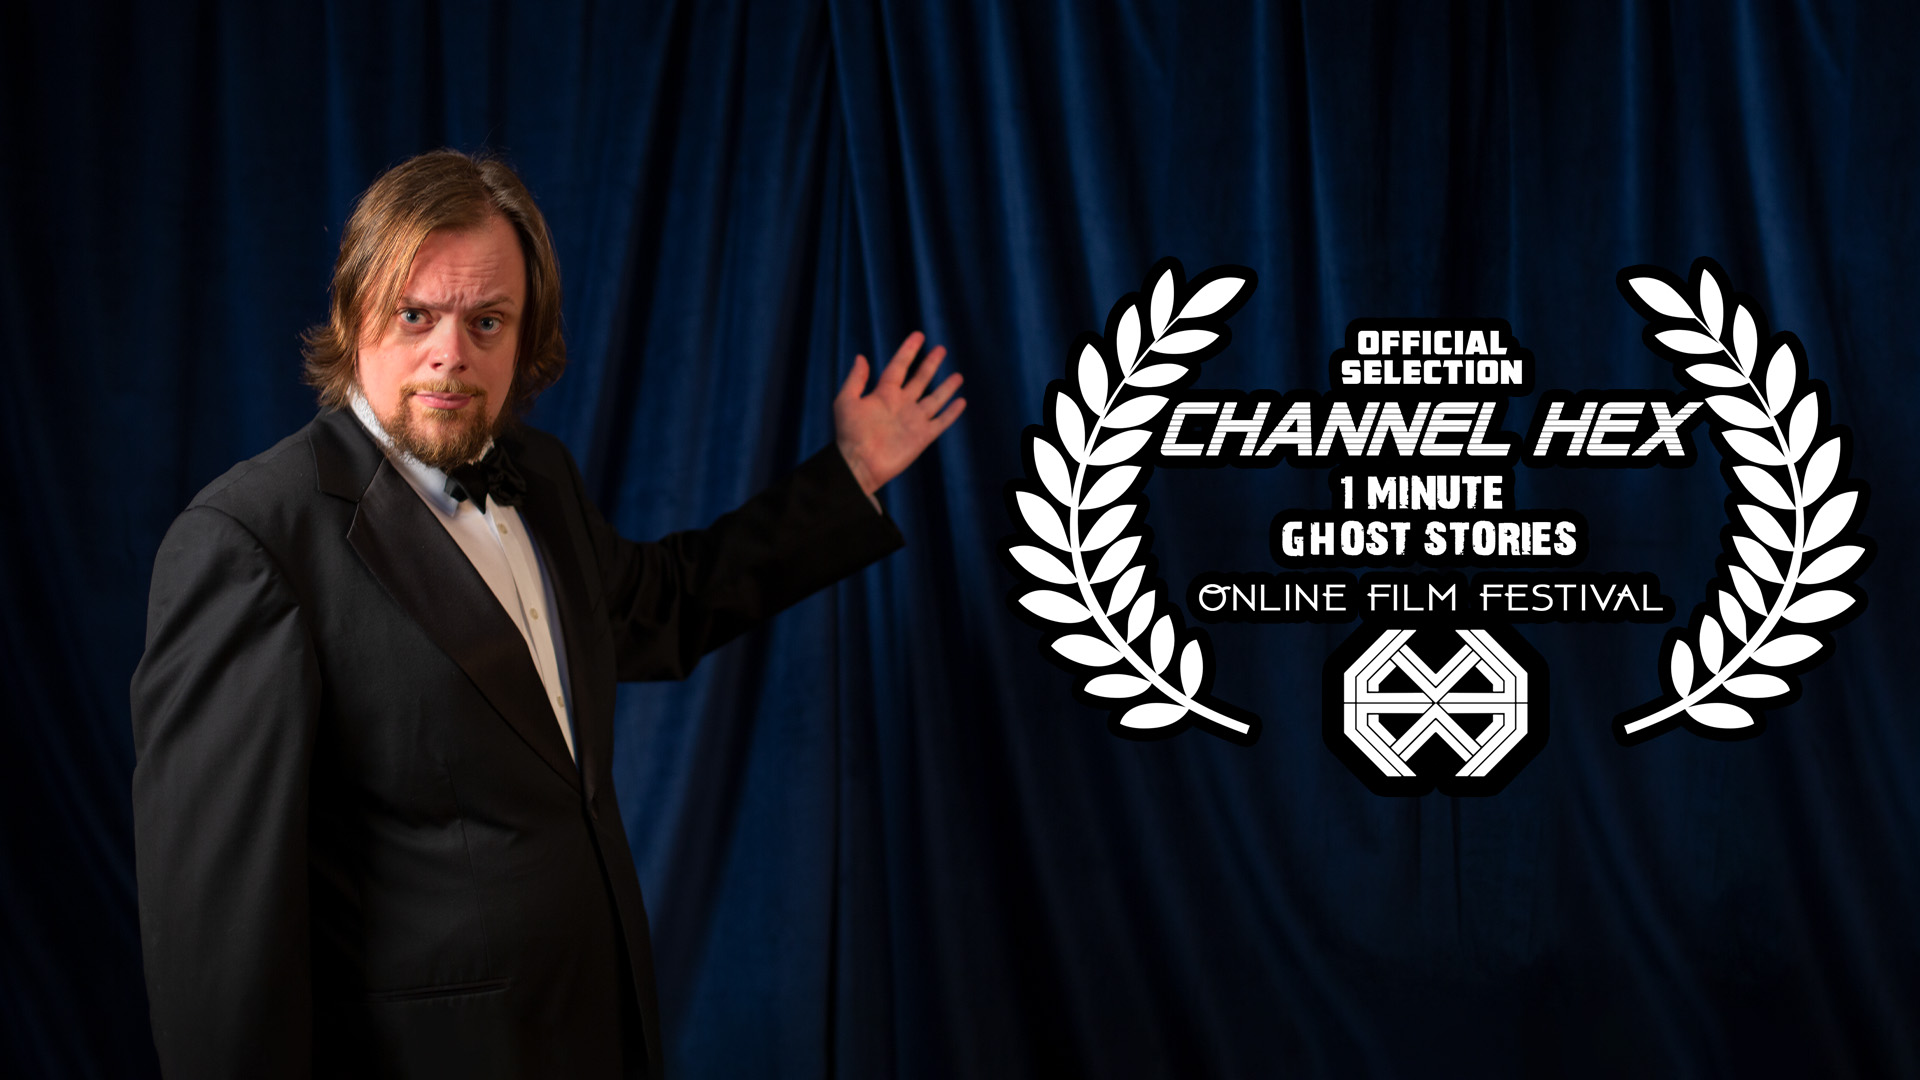 CHANNEL HEX ONE-MINUTE GHOST STORIES ONLINE FILM FESTIVAL – SHORT FILMS NEED YOUR VOTES!